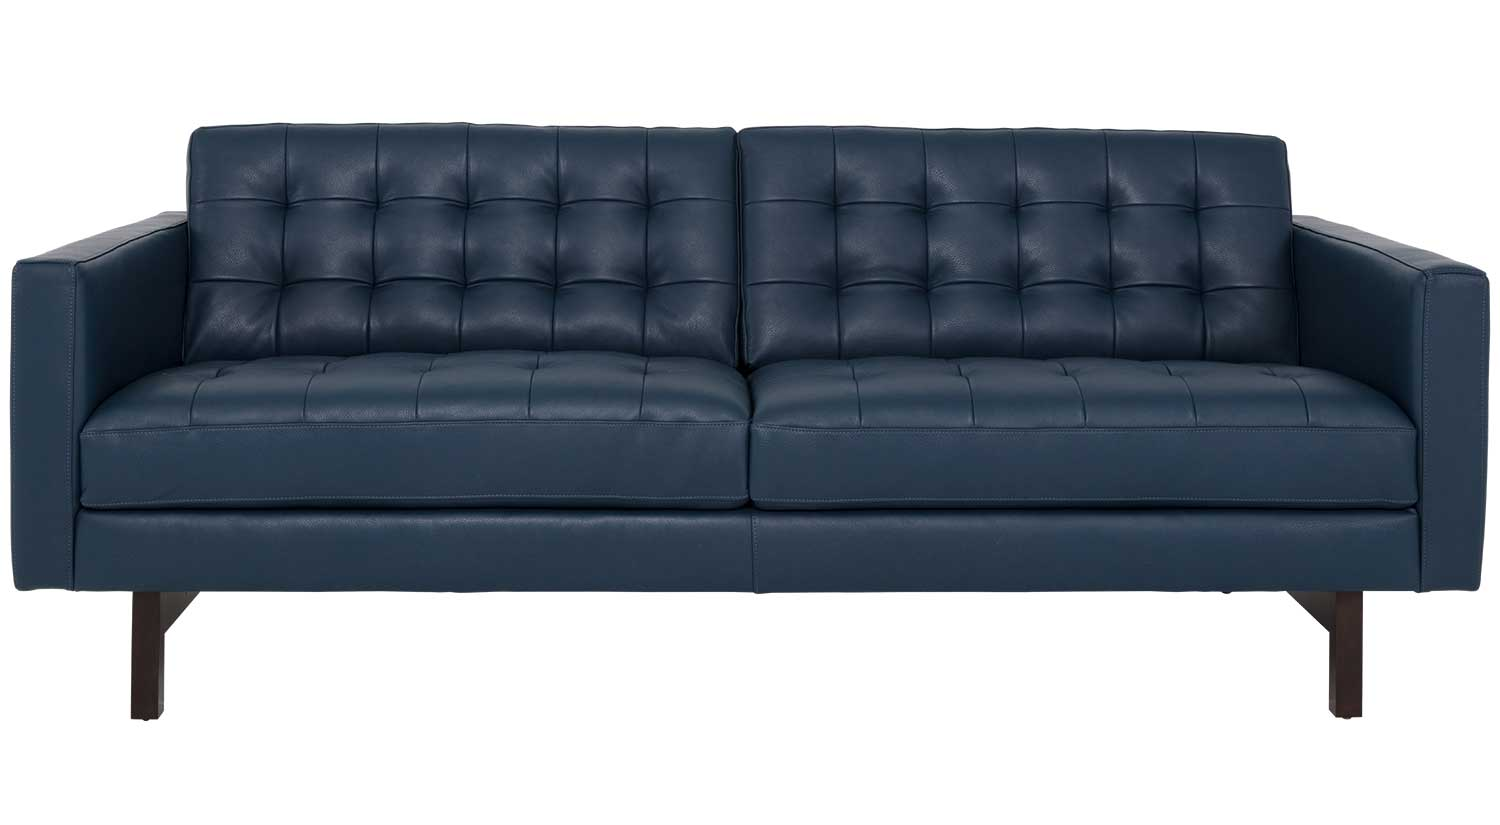 Wondrous Circle Furniture Parker Sofa Designer Sofas Boston Ocoug Best Dining Table And Chair Ideas Images Ocougorg